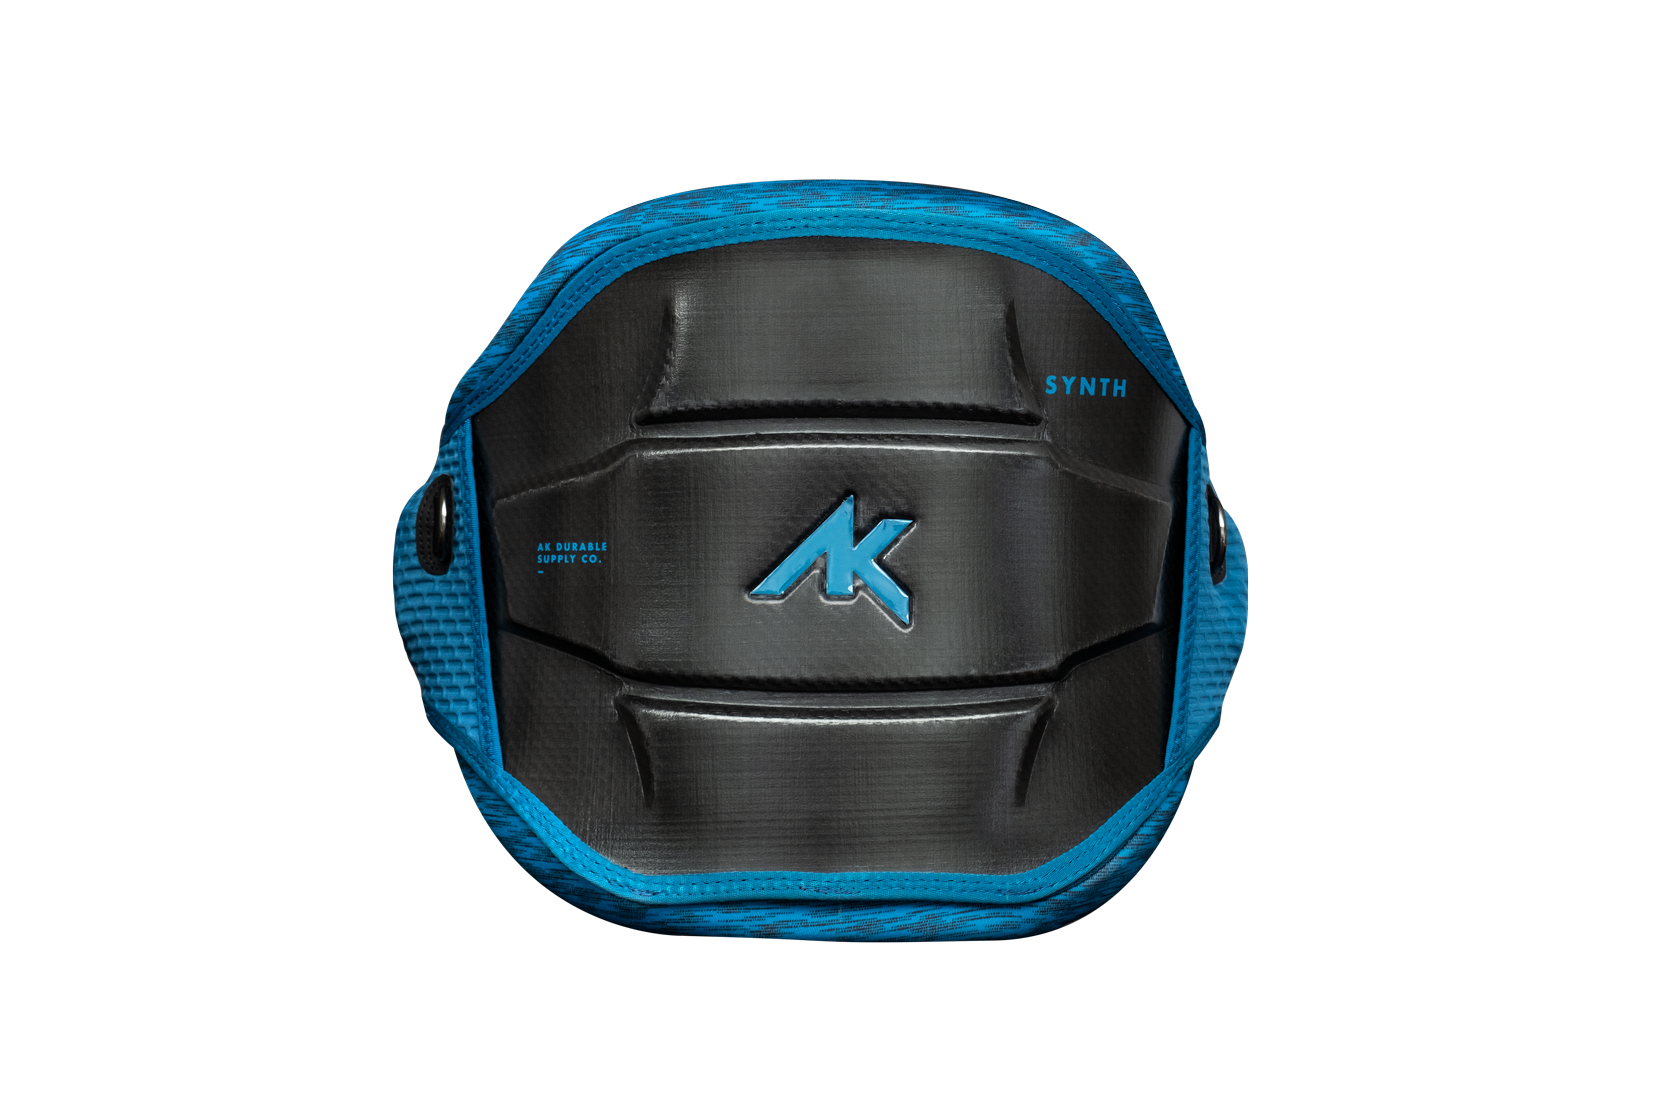 21_AK_Synth Waist Harness_Teal_img-01